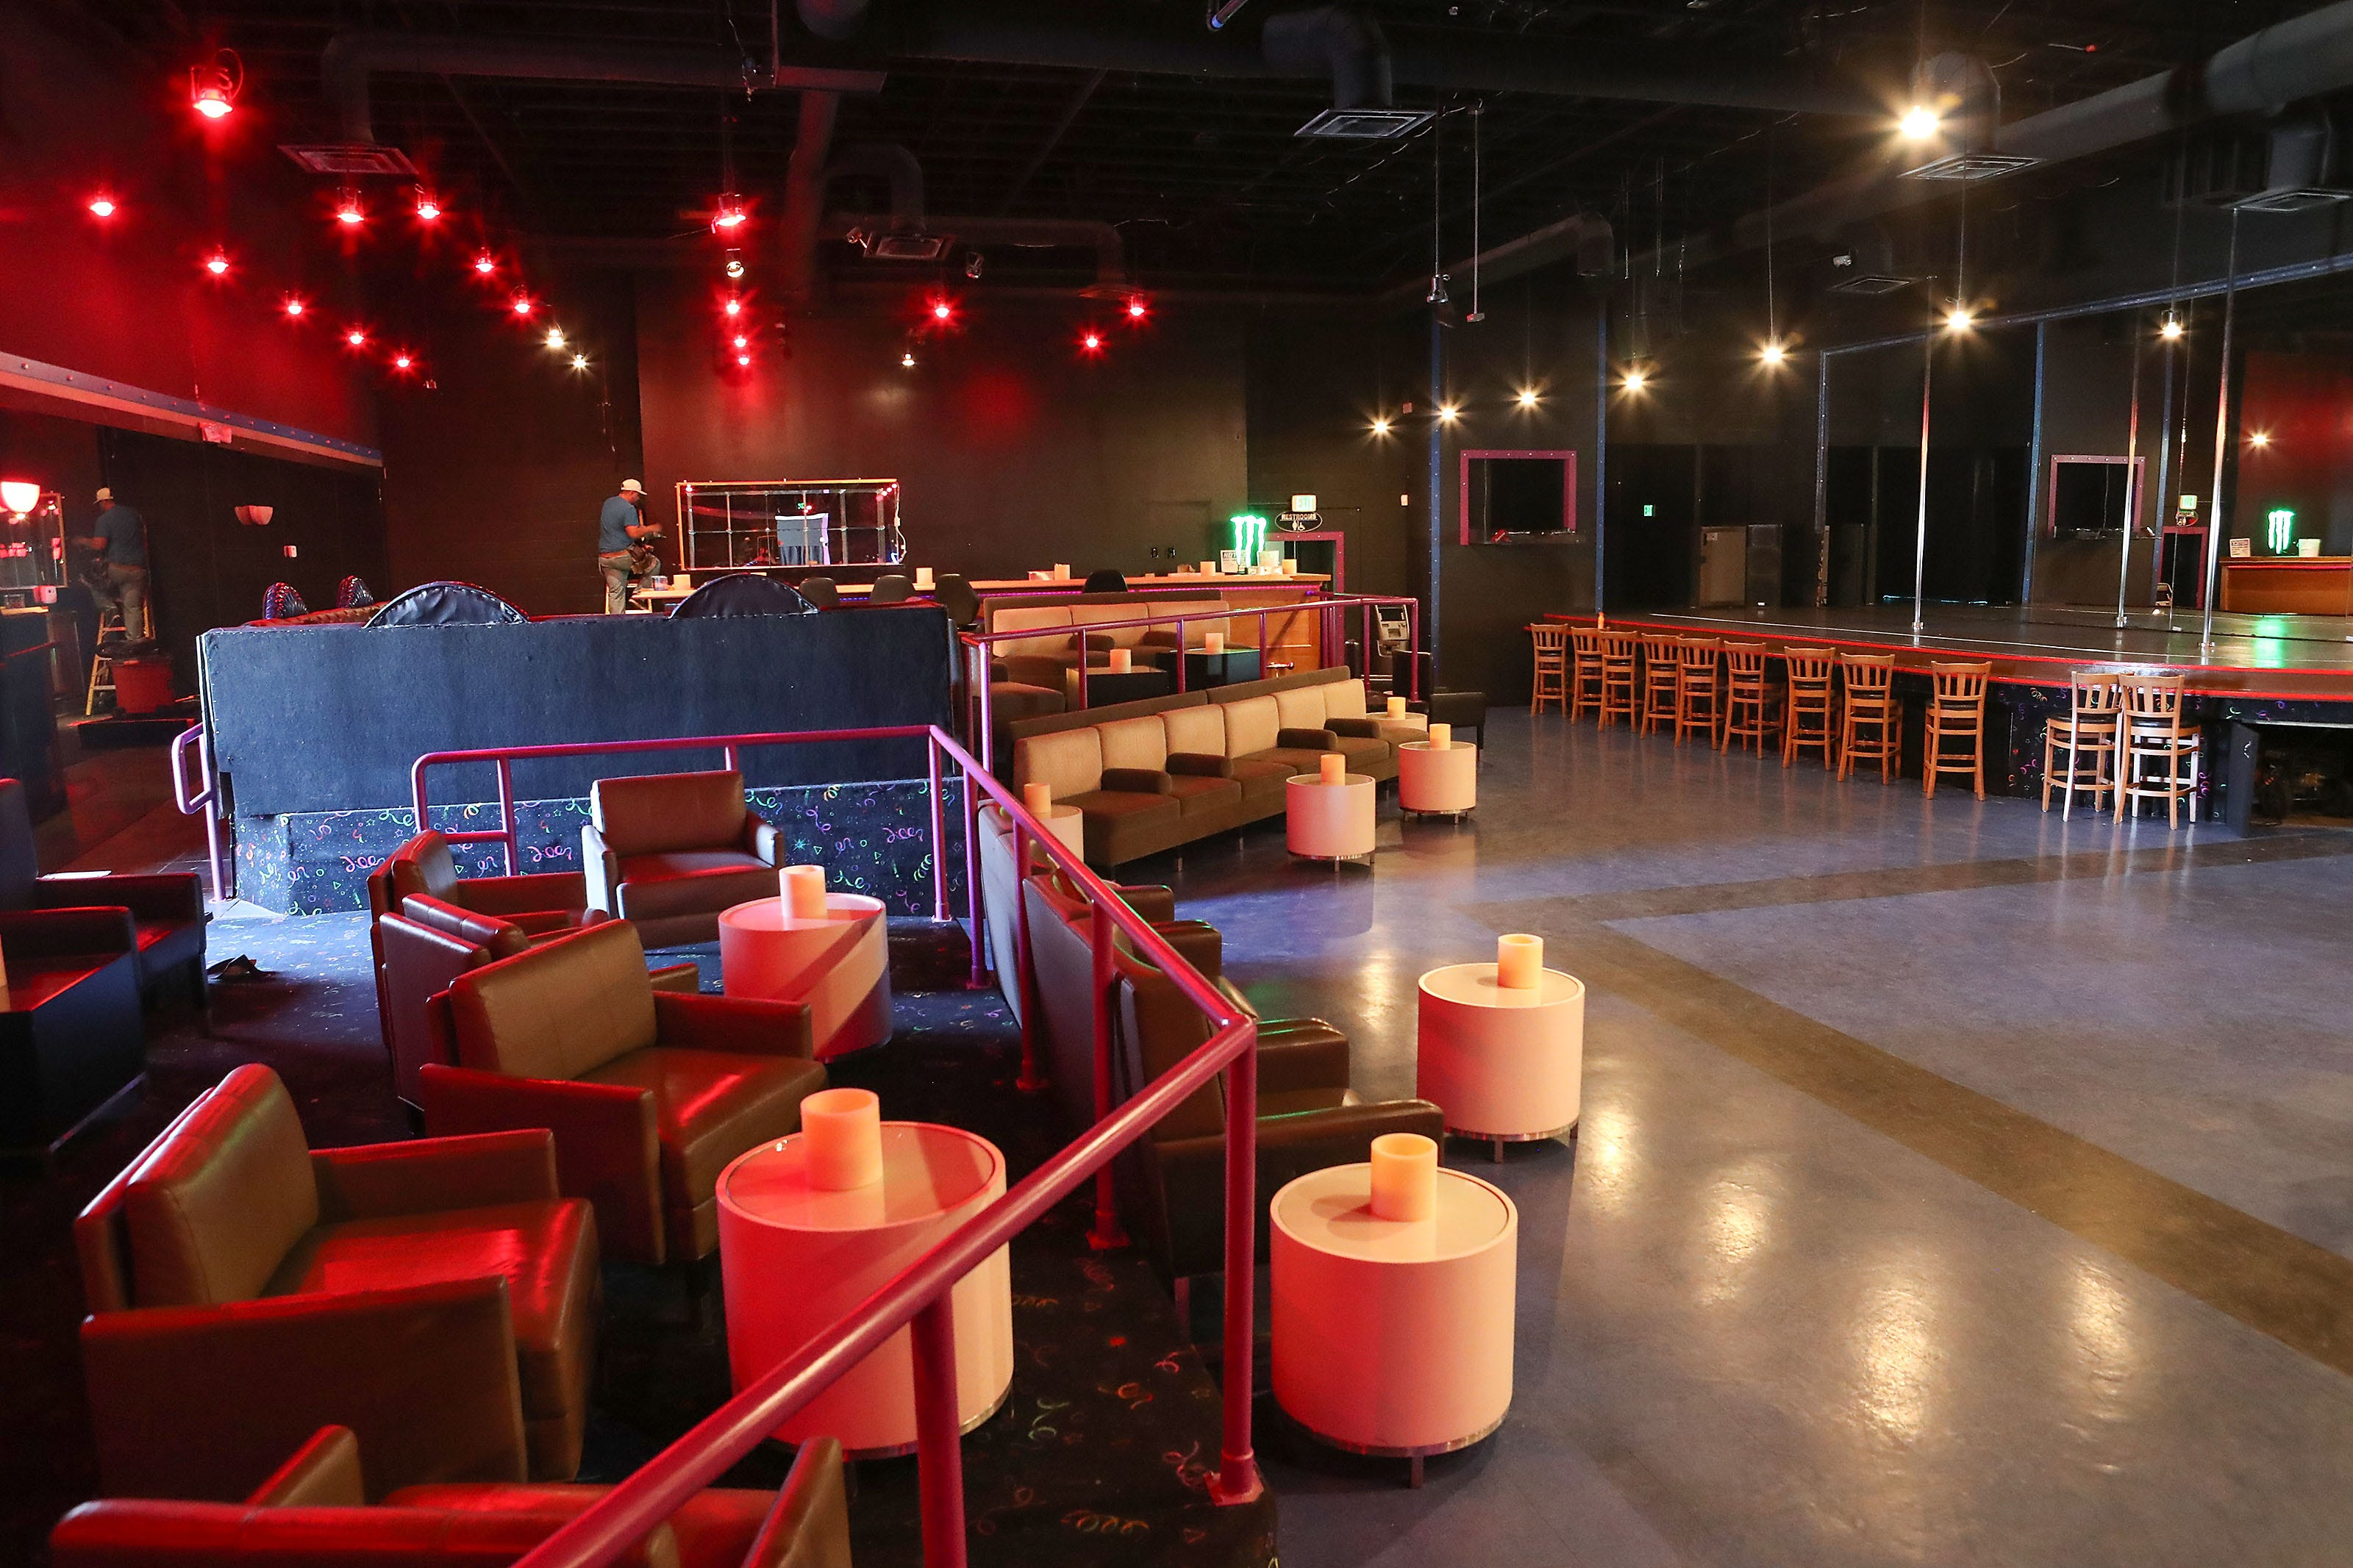 The interior of Chicas Gentlemens Club which will open & After two years of struggle a new strip club is opening in Coachella